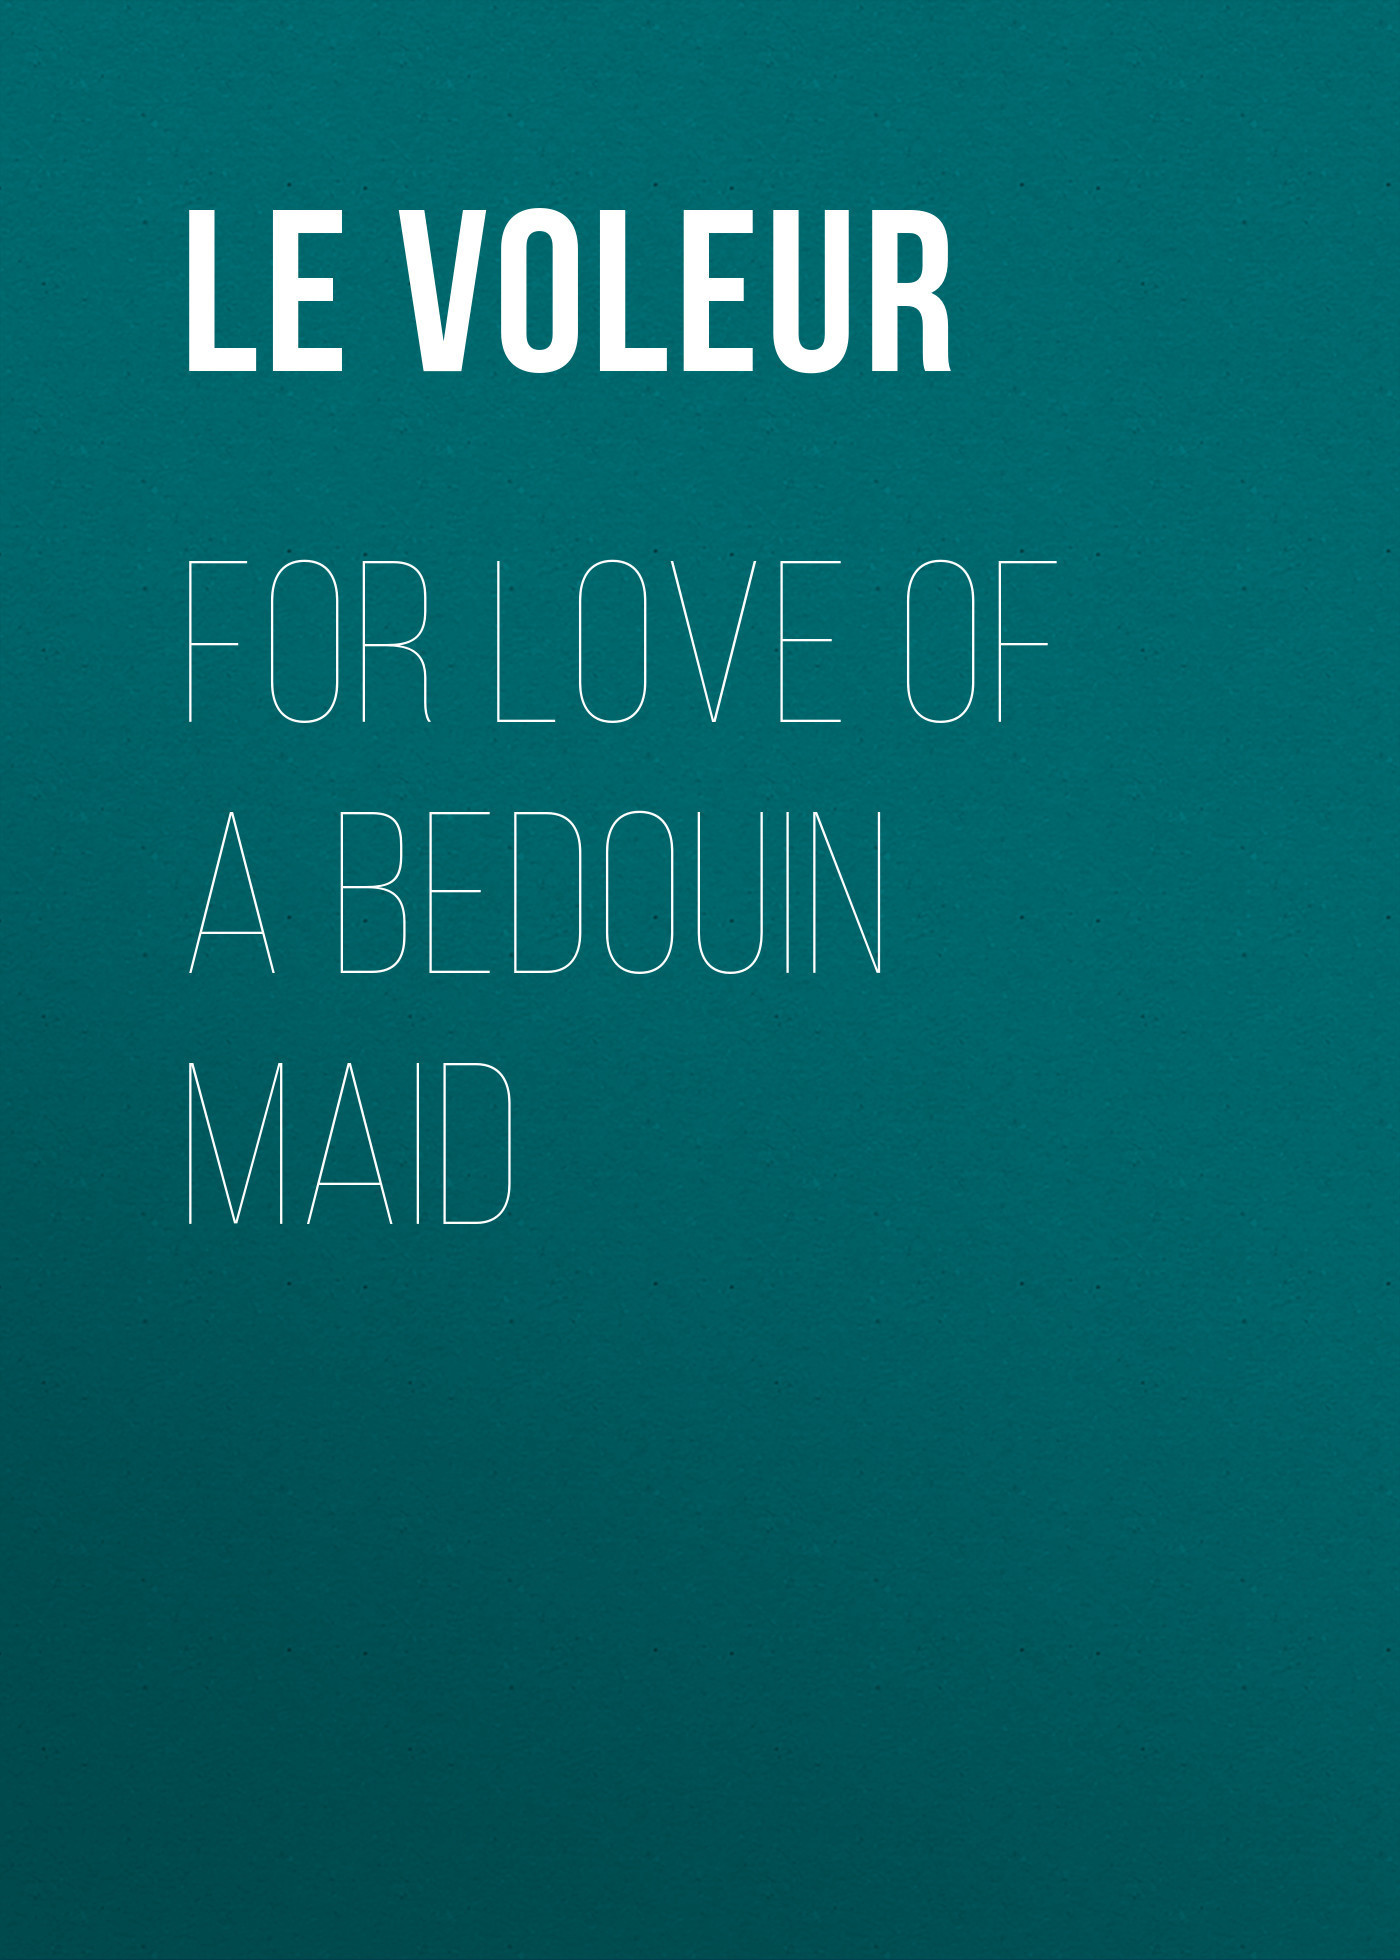 Le Voleur For Love of a Bedouin Maid maid in love футболка